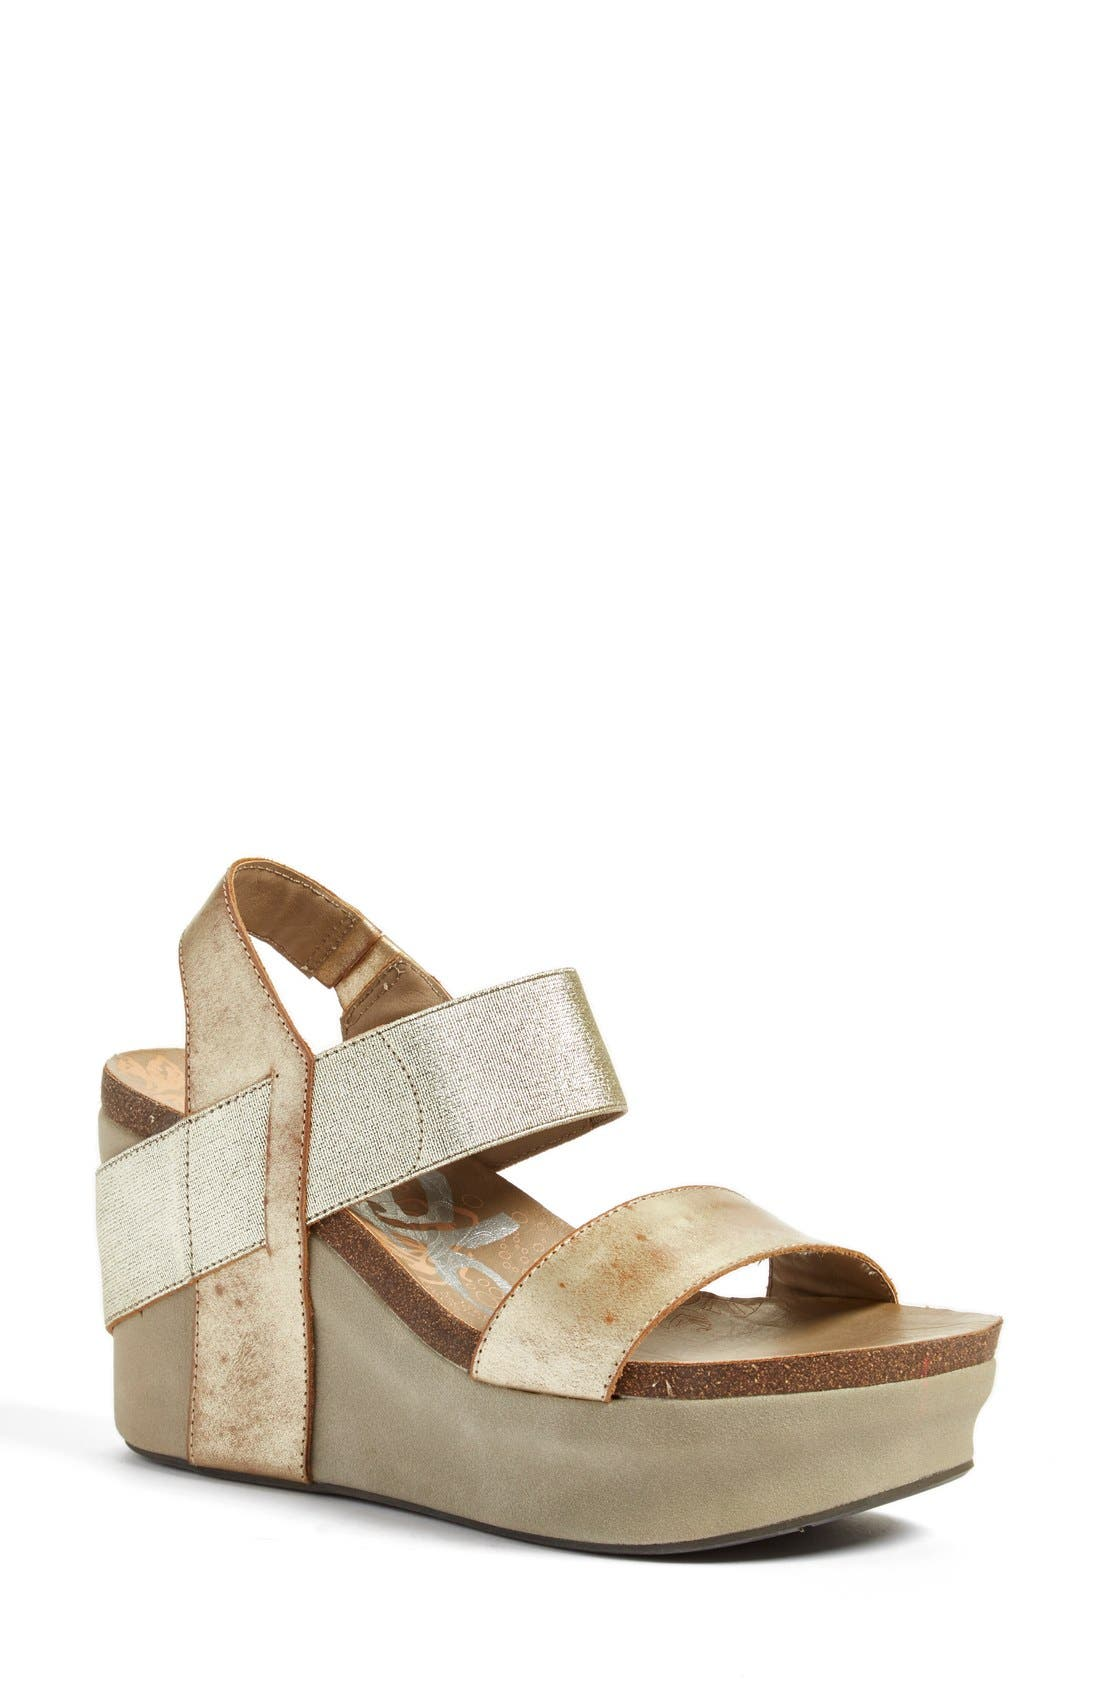 'Bushnell' Wedge Sandal,                             Main thumbnail 13, color,